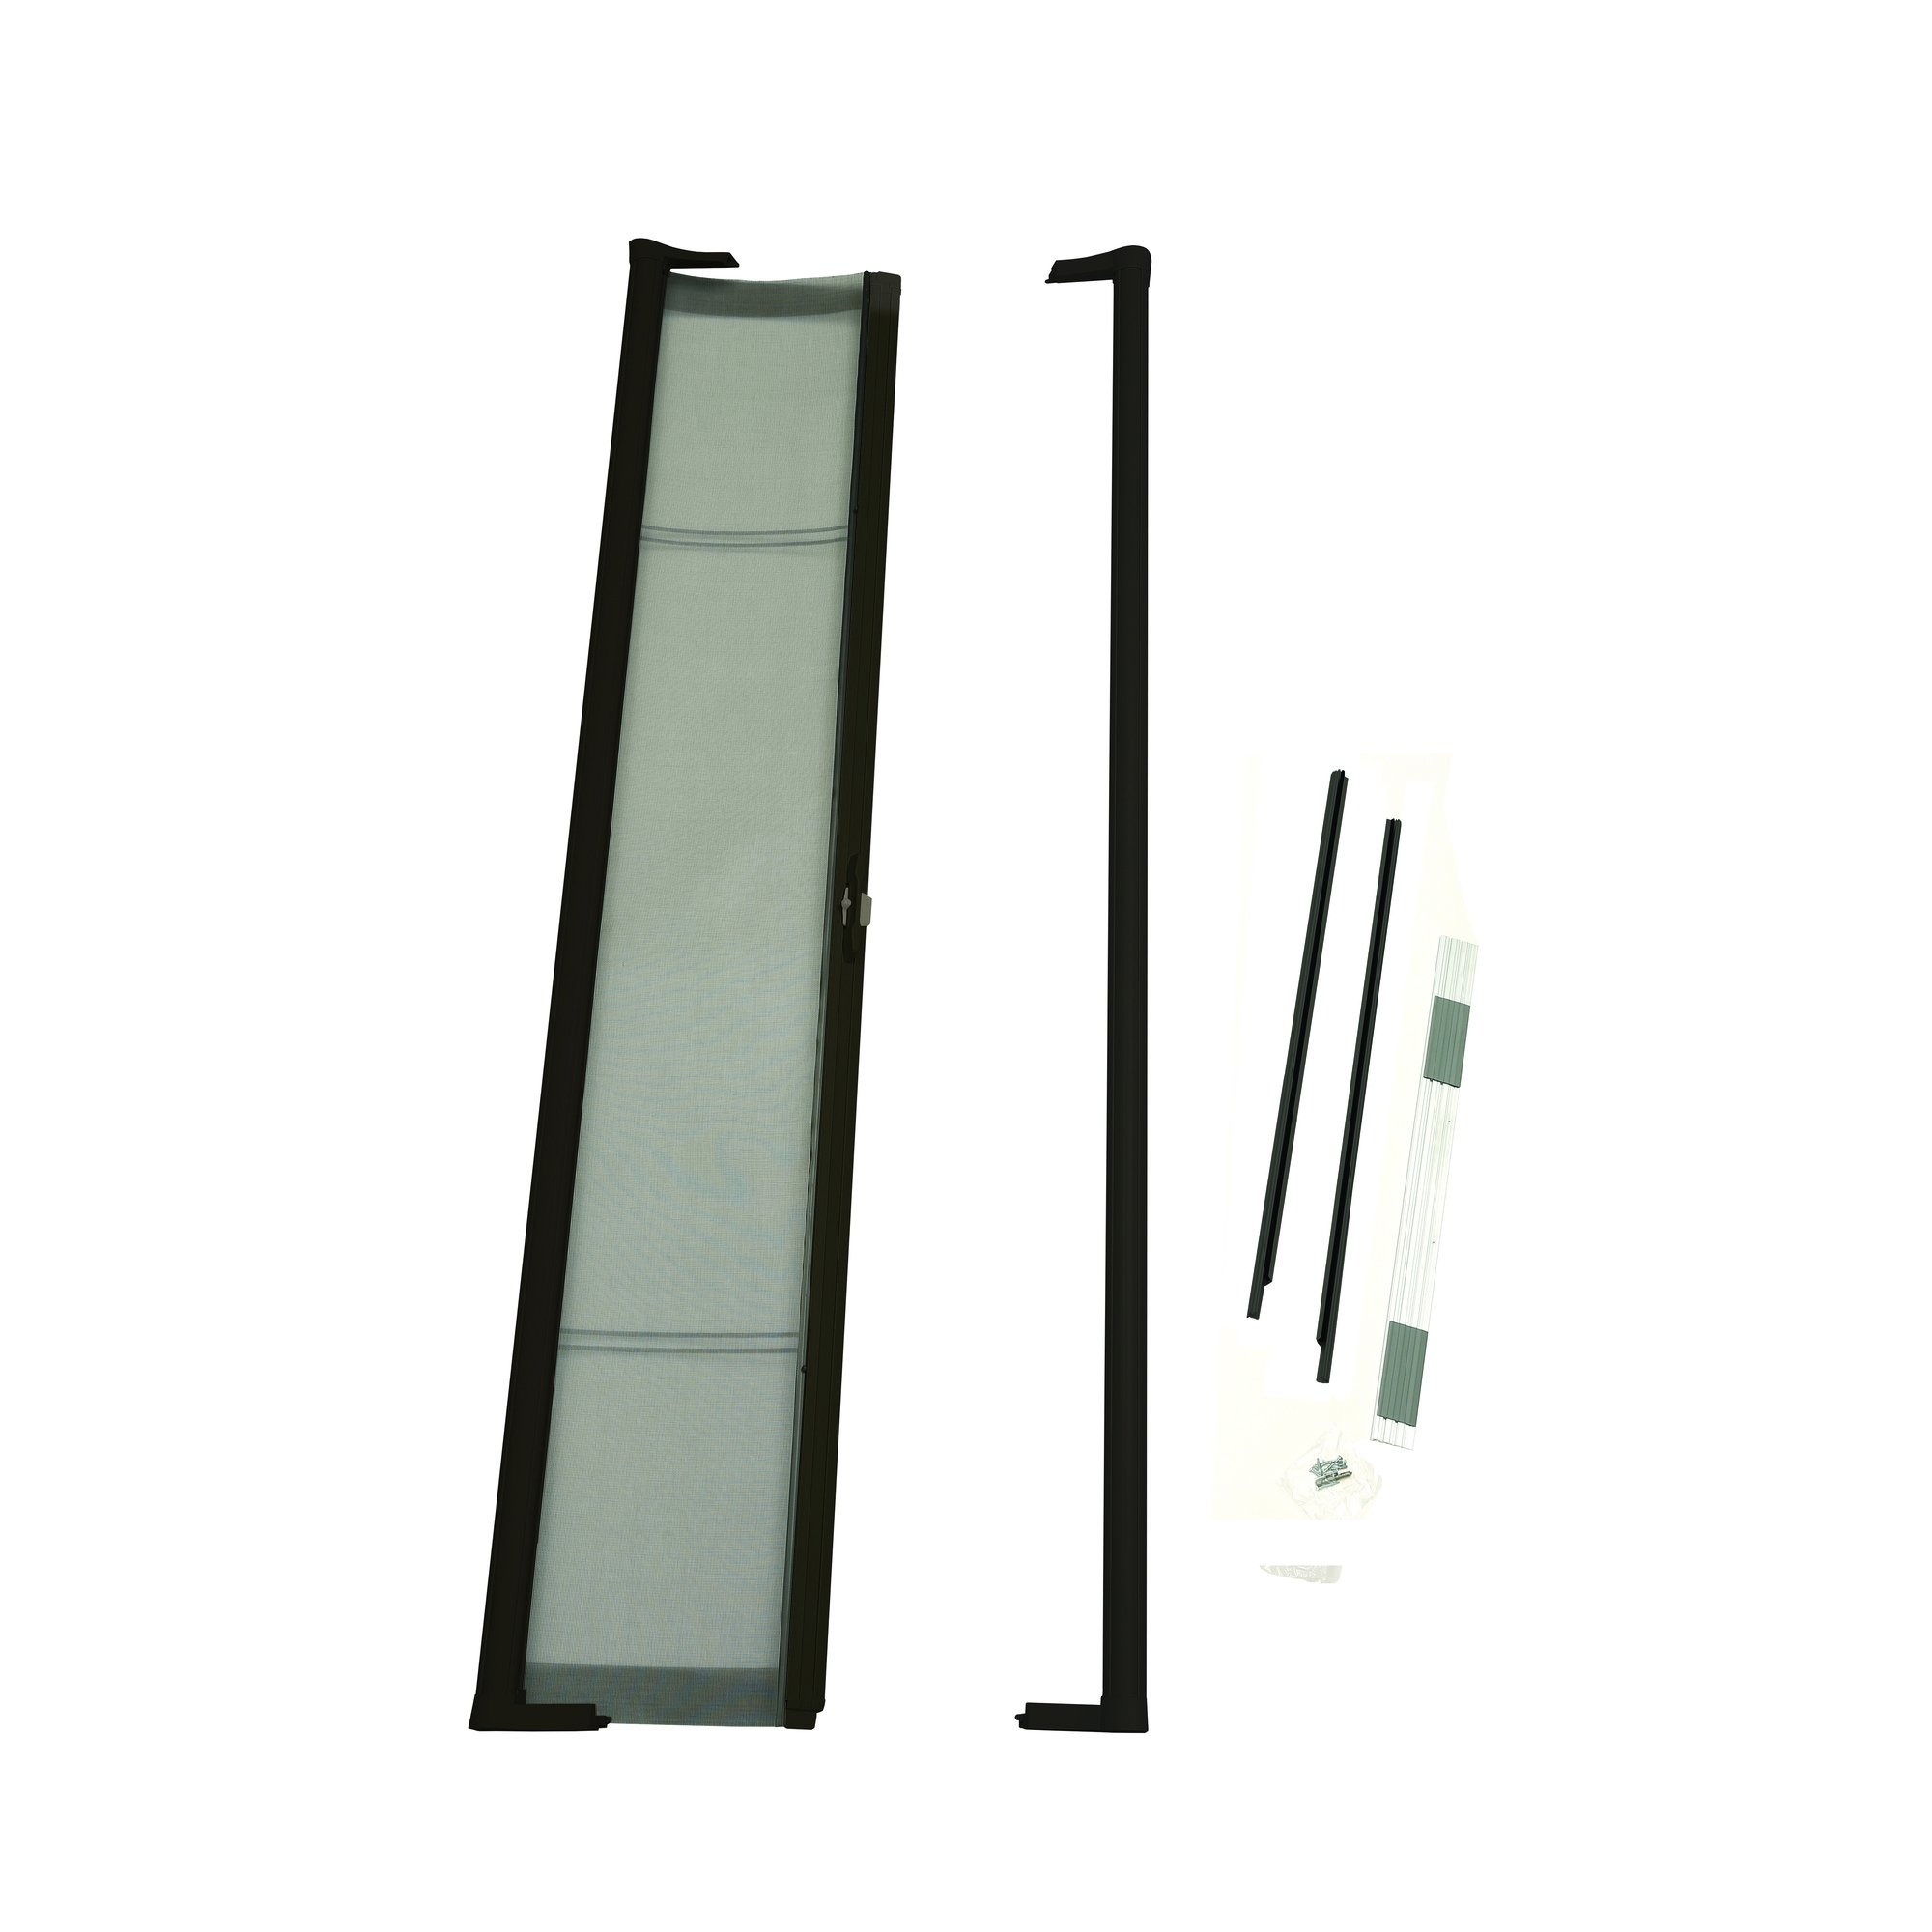 ODL Brisa Premium Retractable Screen for 78 in. Inswing/Outswing Hinged Doors - Bronze